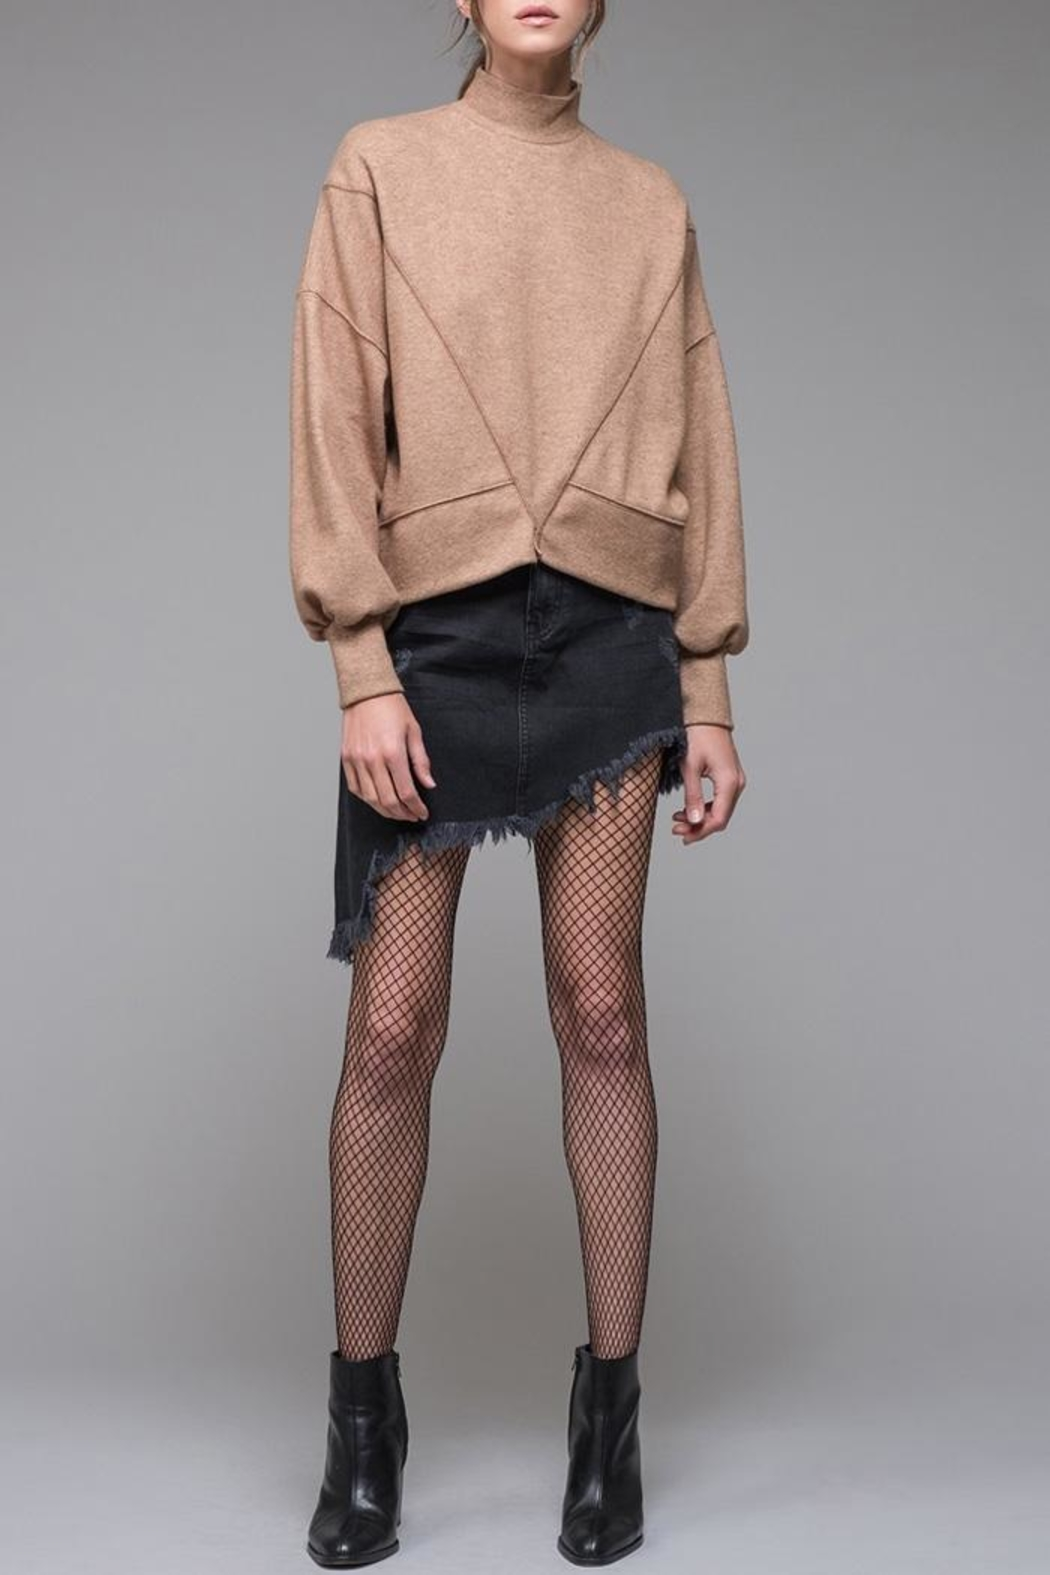 EVIDNT Denim Fringe Skirt - Main Image